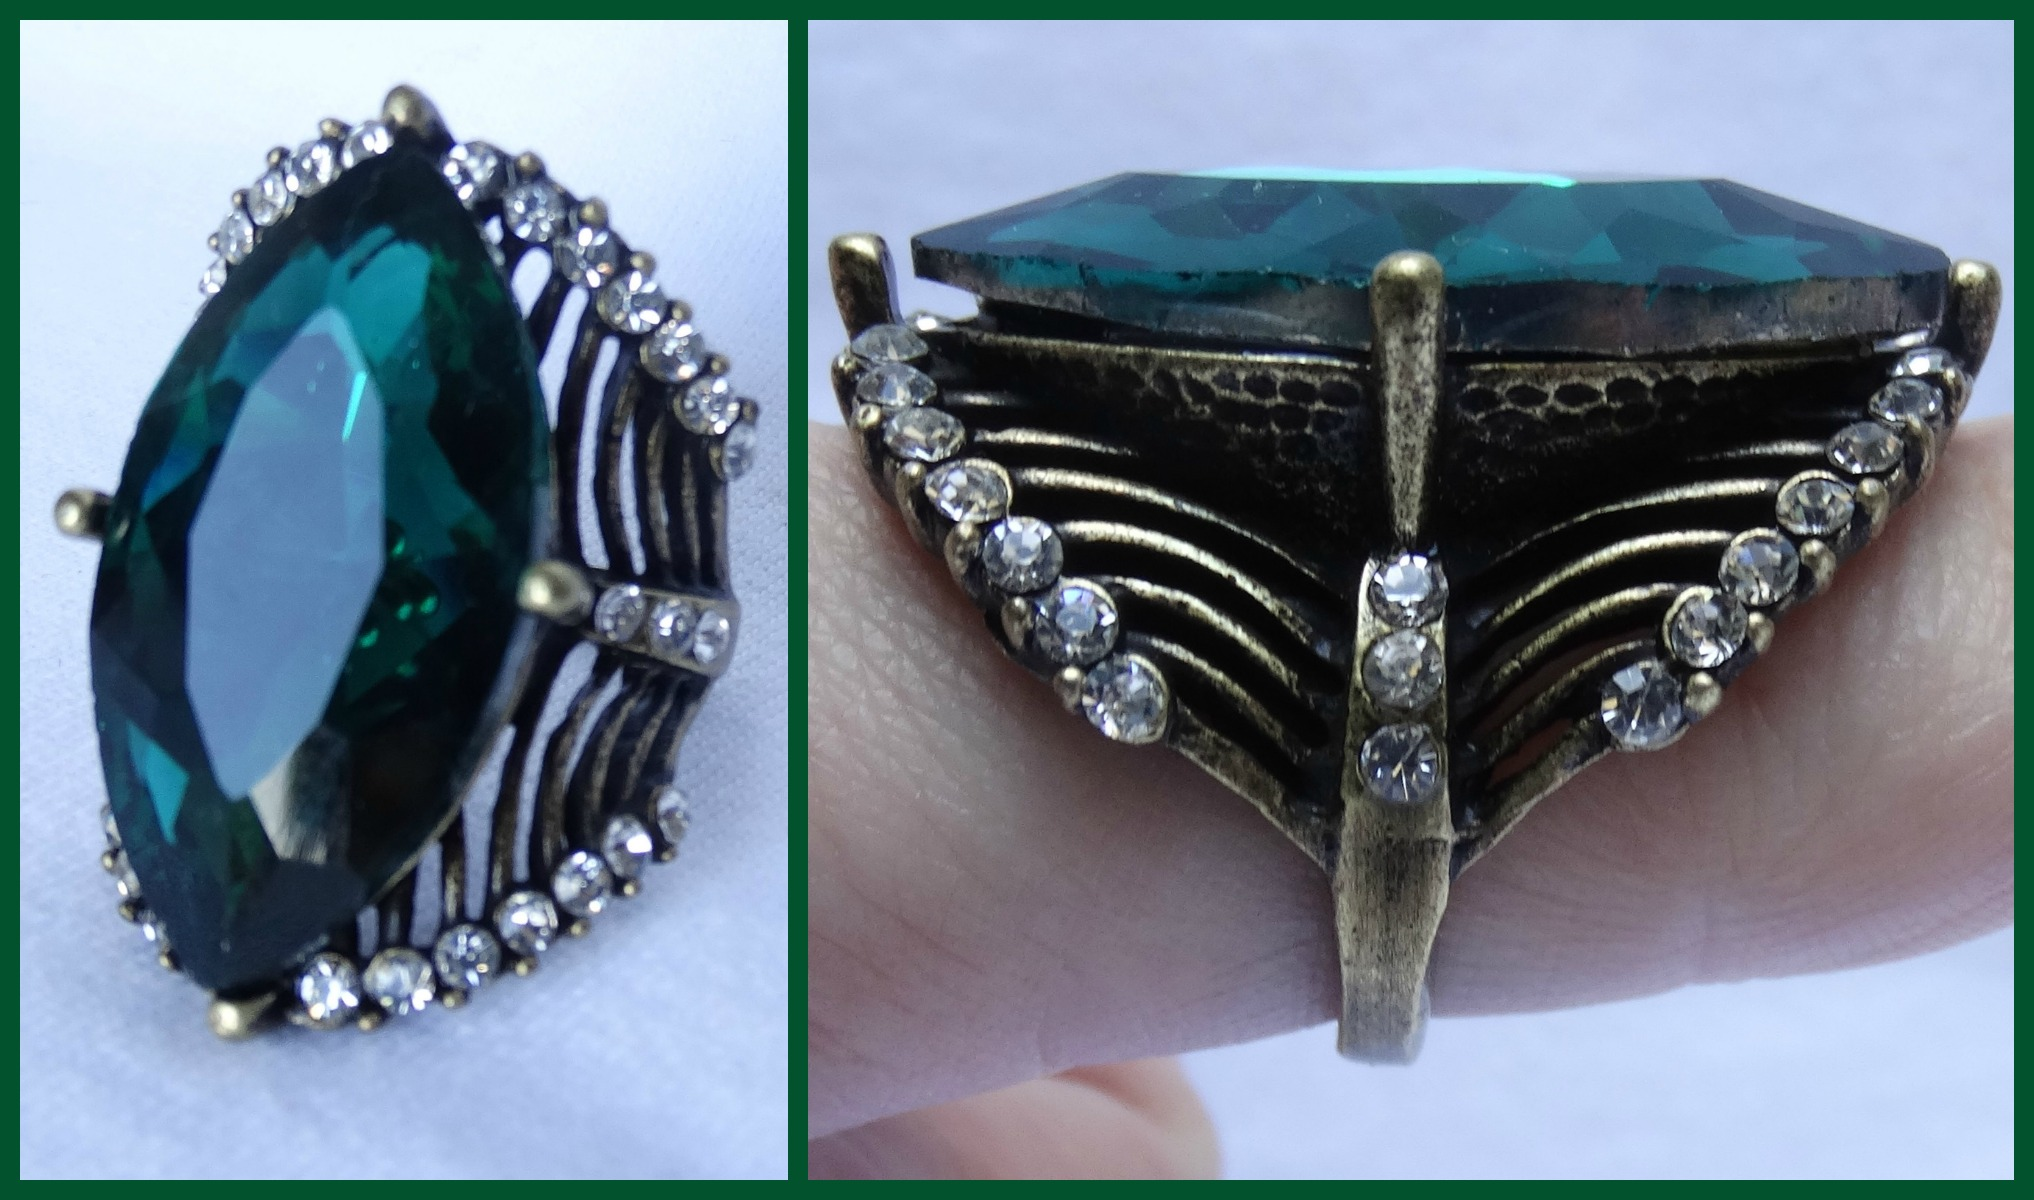 MY PERSONAL COLLECTION: More blue and green jewels